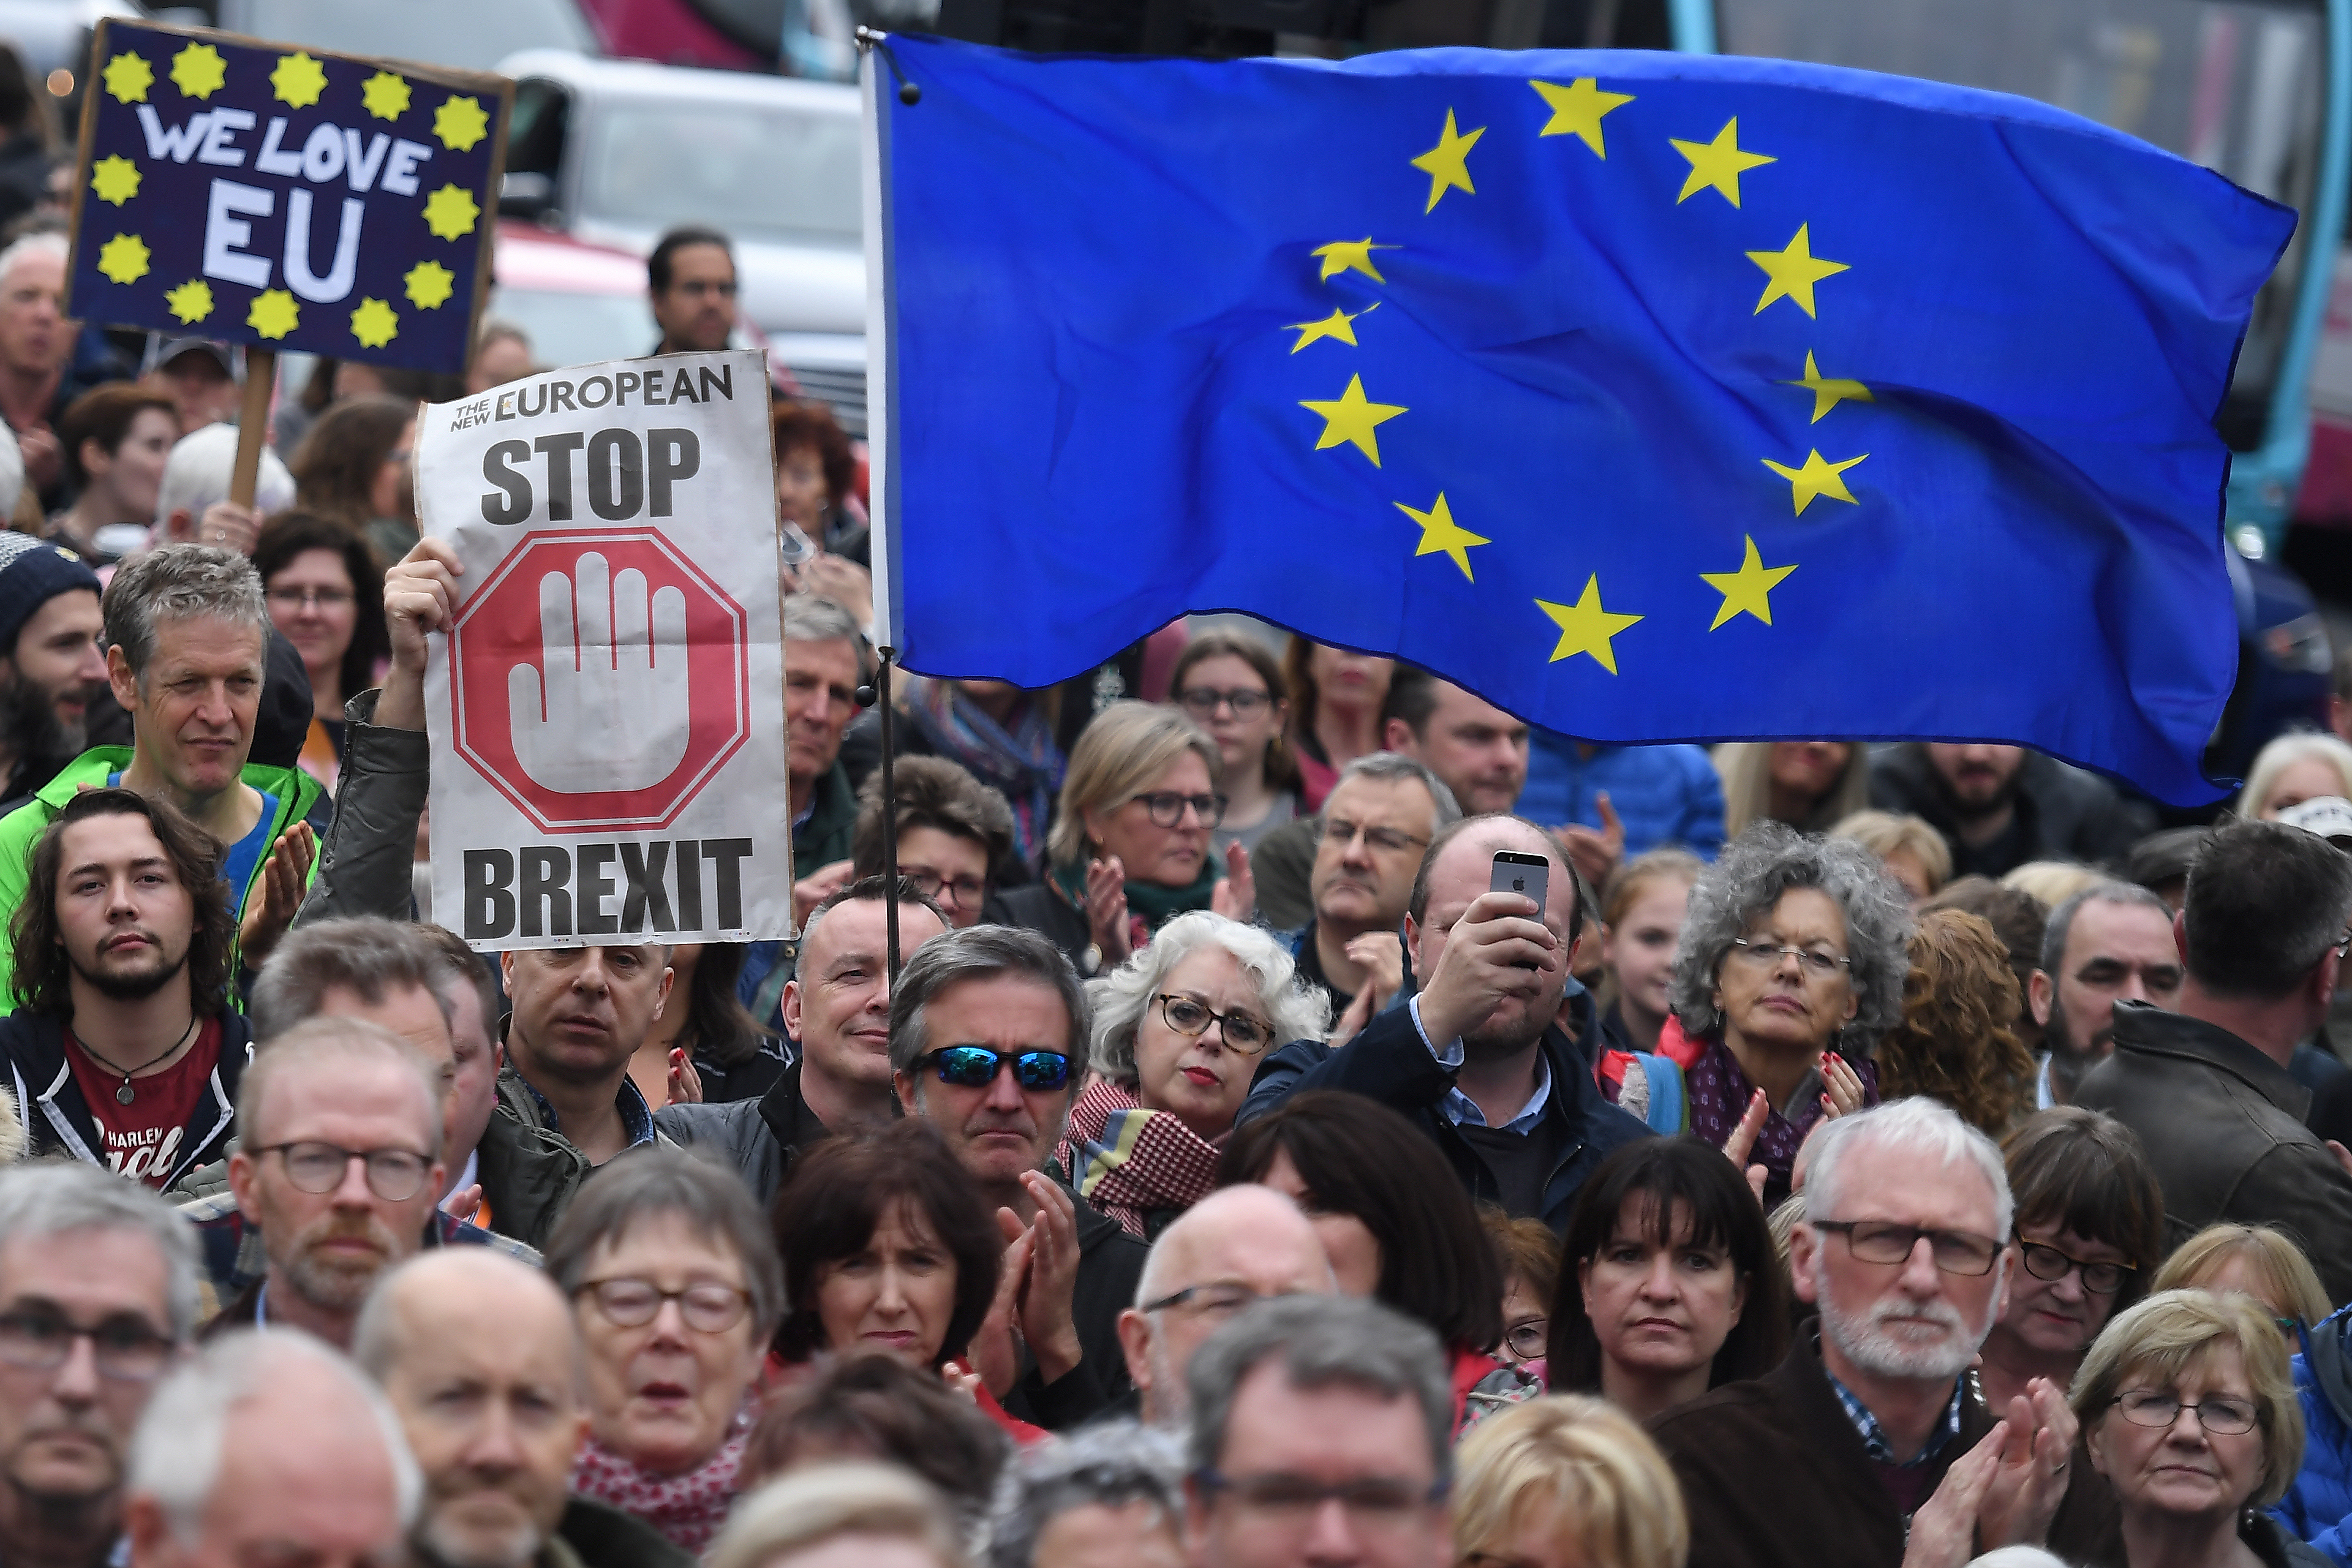 Protesters participate in an anti-Brexit demonstration at City Hall